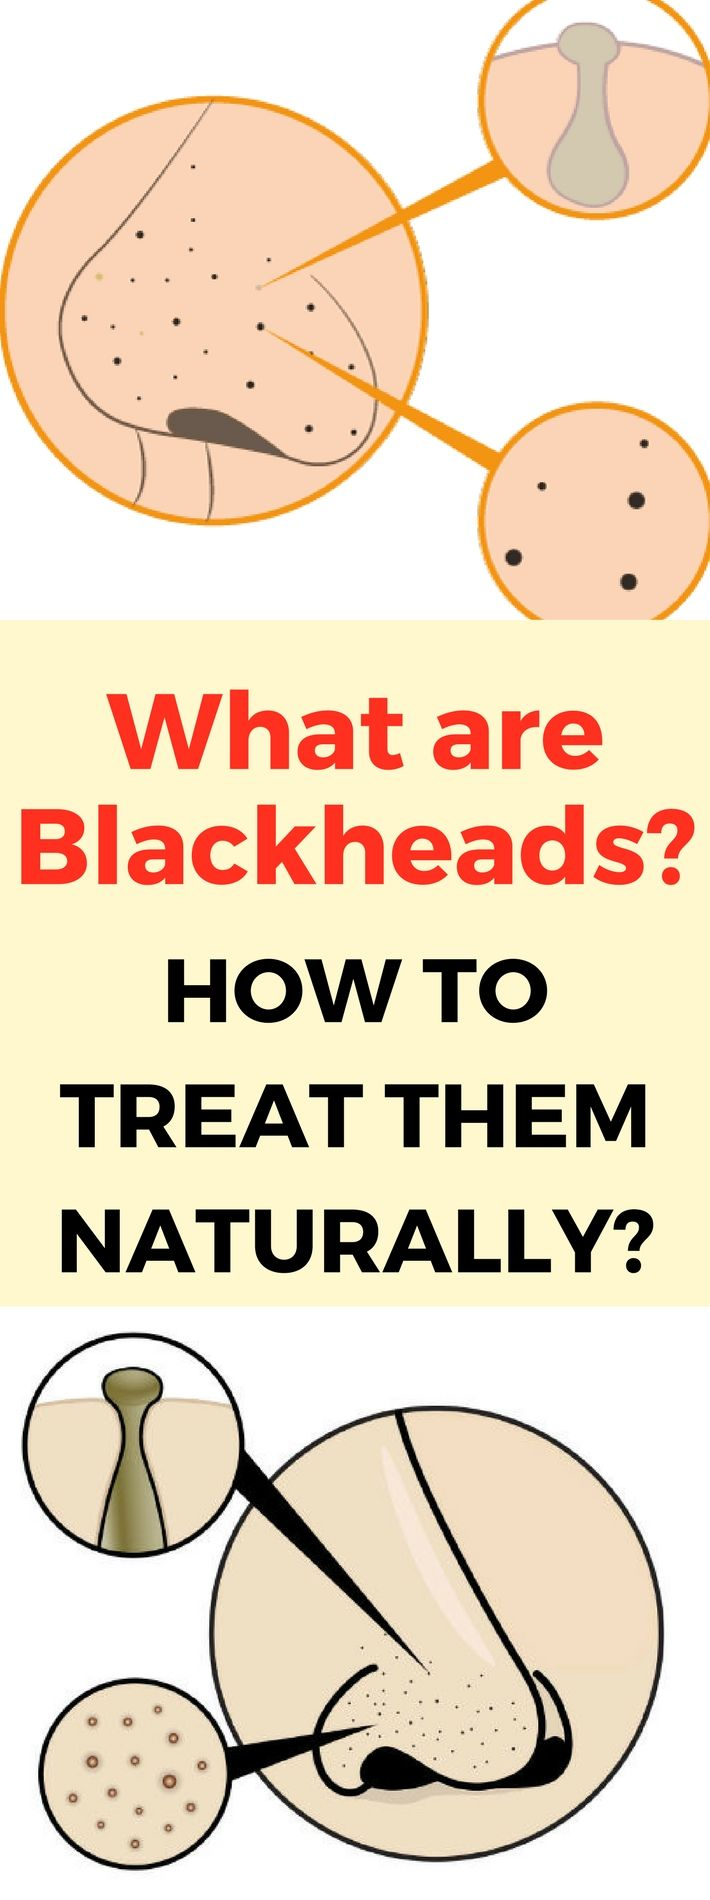 What are Blackheads and How to Treat Them Naturally...? Read!!!